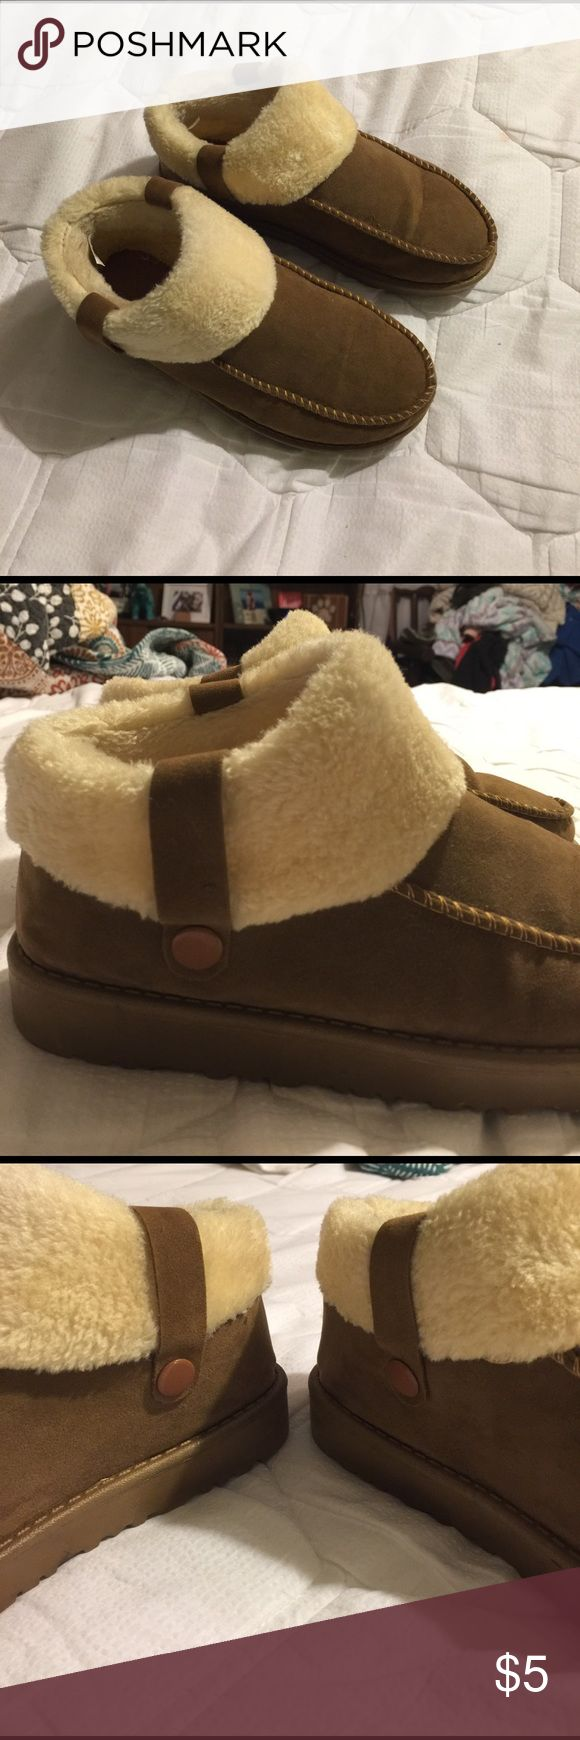 Brown faux fur and suede moccasin booties Cute brown faux fur and suede mocassin booties. Keep feet extra warm in the winter months. Worn once. Size 38 in European, fits like size 7 in US. Shoes Winter & Rain Boots